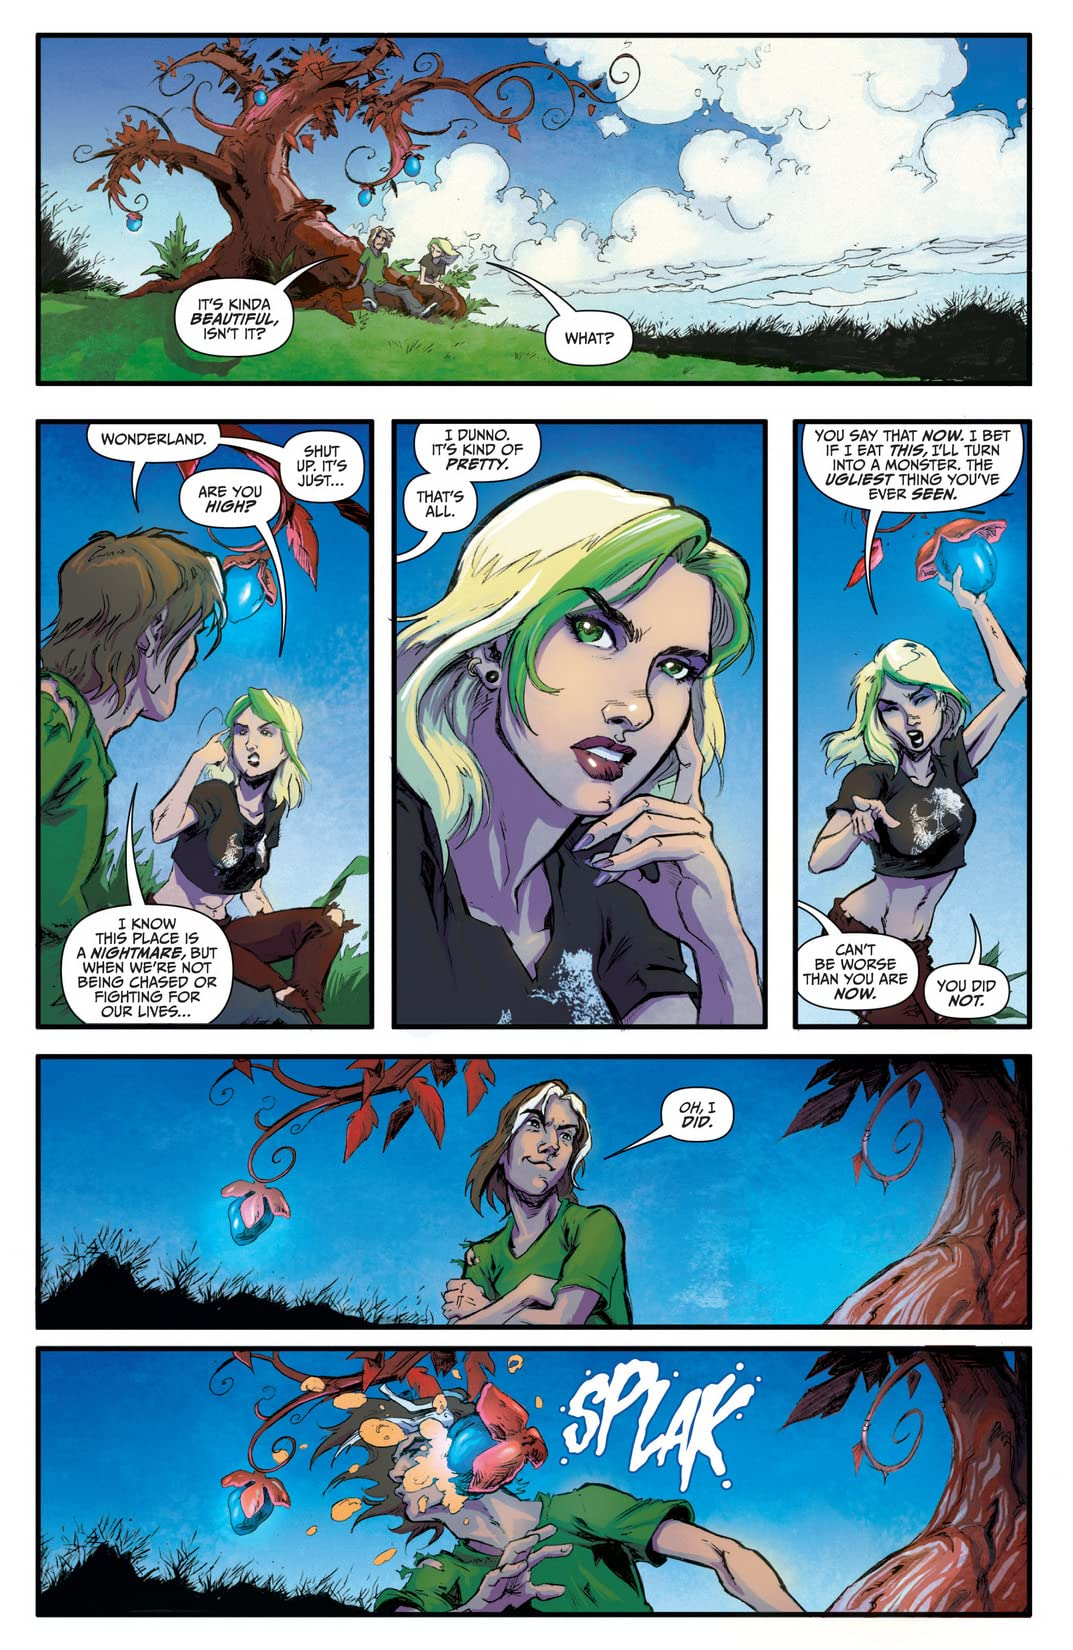 Wonderland: Through the Looking Glass #4 (of 5)